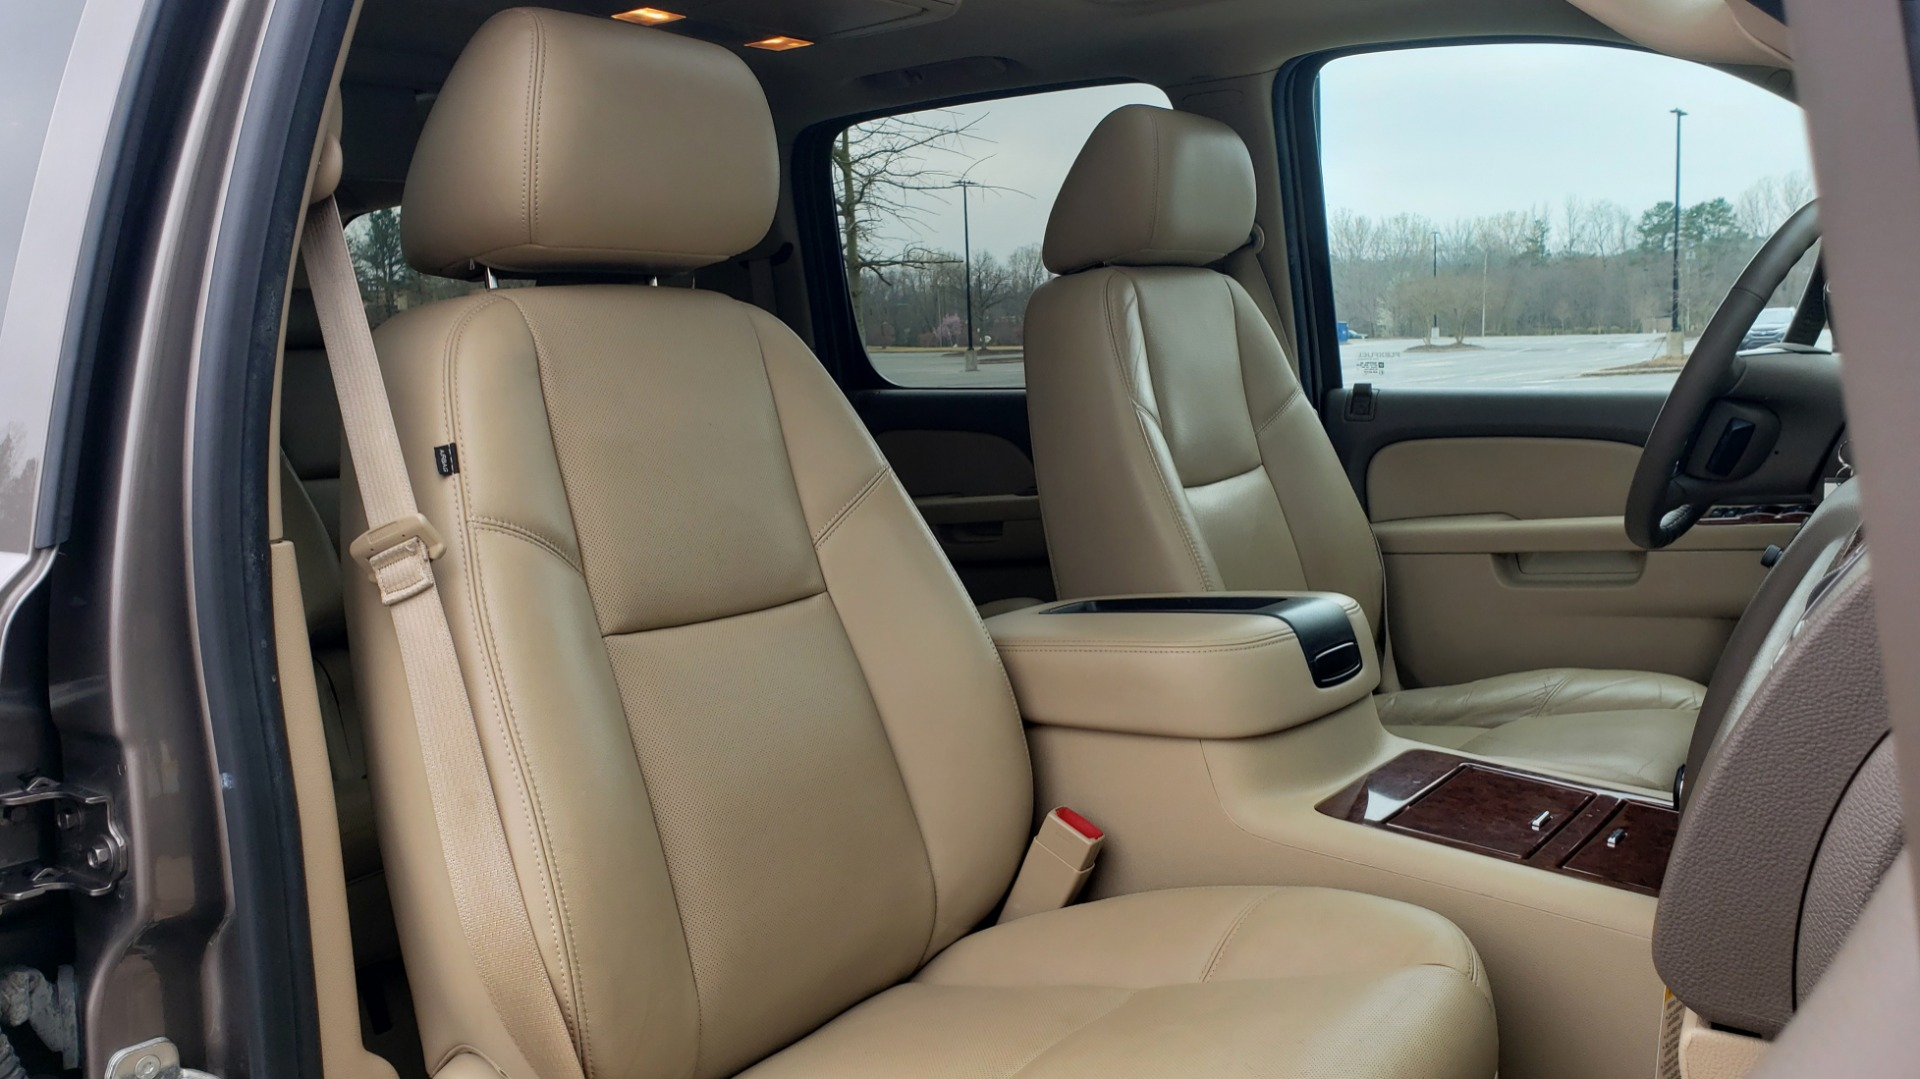 Used 2014 Chevrolet SUBURBAN LTZ / 4WD / ENTERTAINMENT / NAV / SUNROOF / TRAILER PKG for sale Sold at Formula Imports in Charlotte NC 28227 64